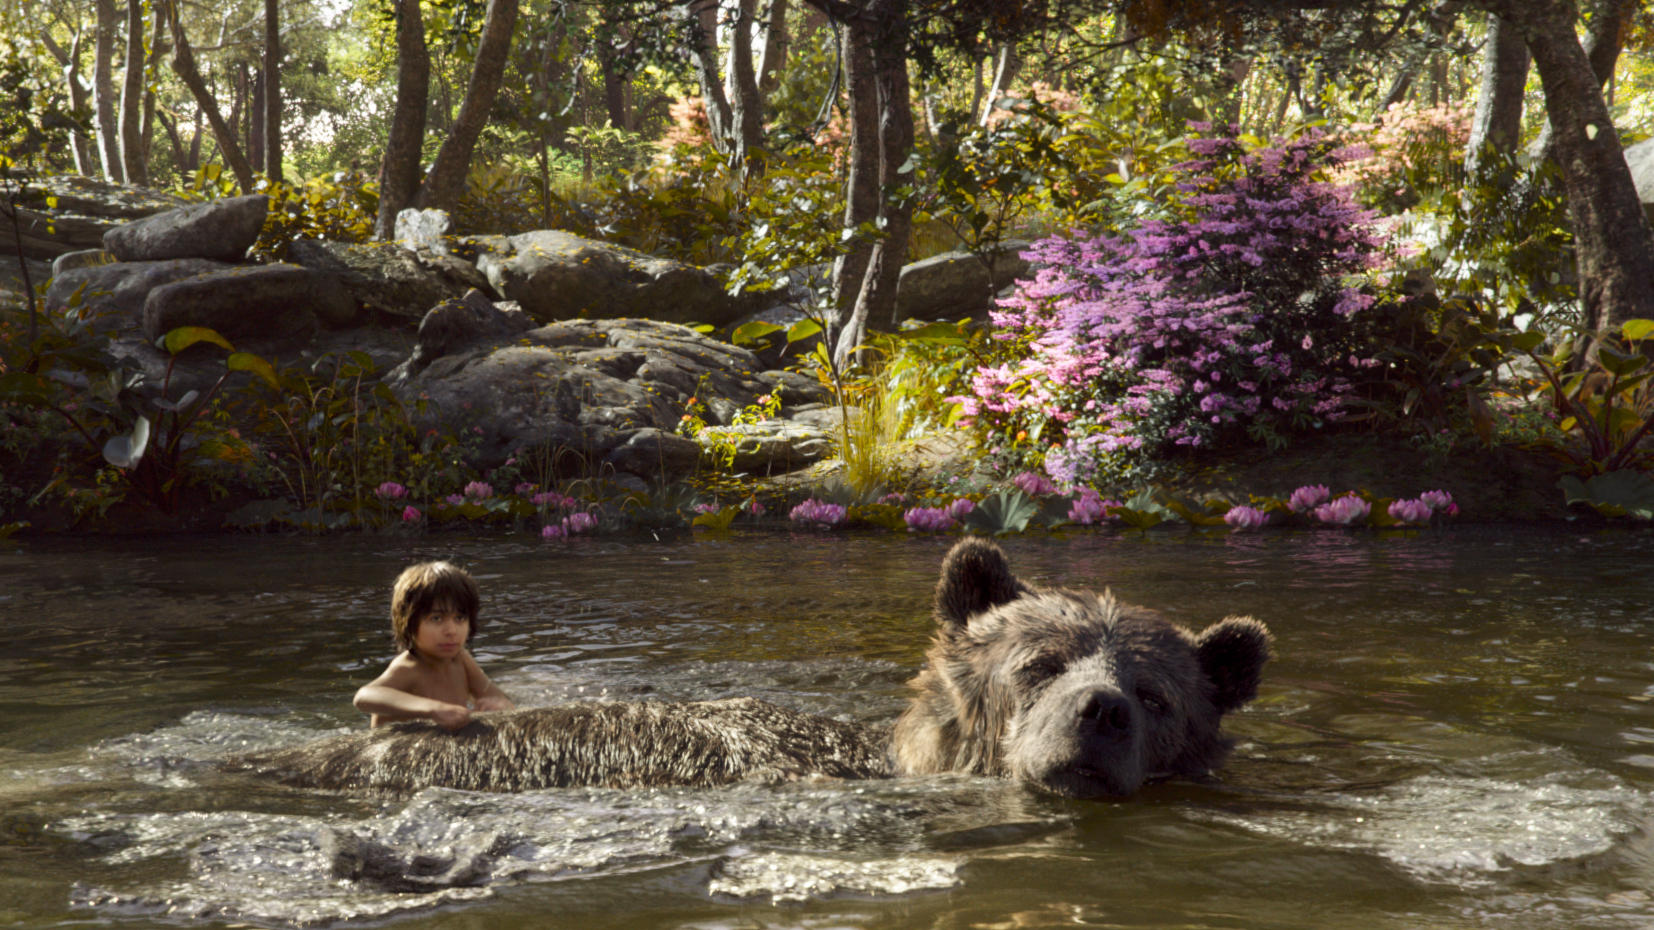 Jungle Book: Disney creates innovative Facebook 360 videos